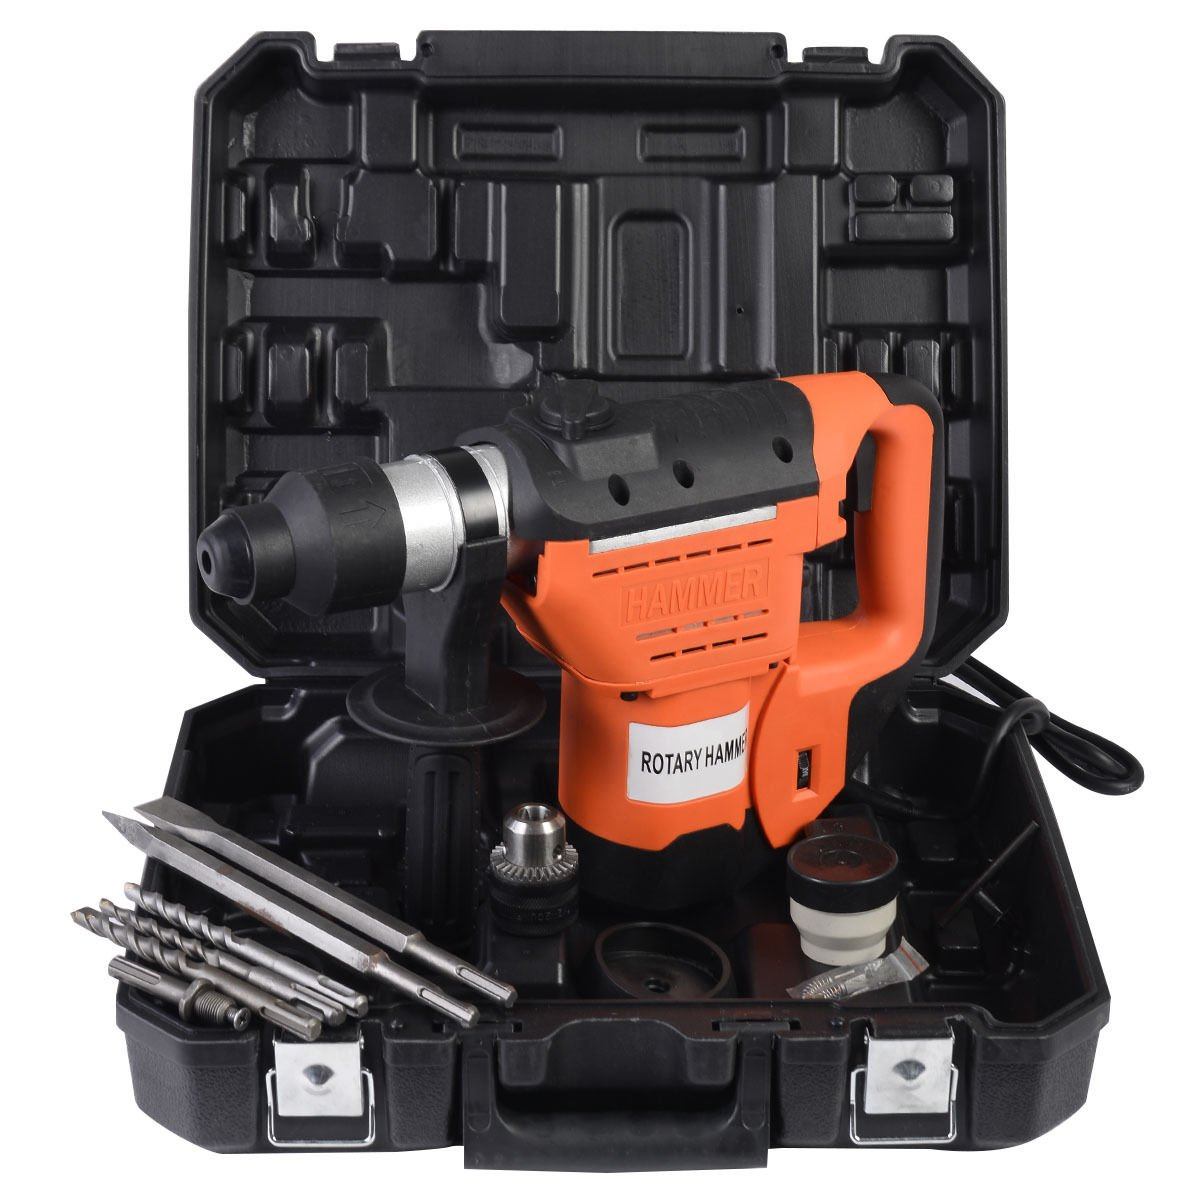 1 1/2'' SDS Electric Rotary Hammer Drill Plus Demolition Variable Speed with Bits and Case by Jikkolumlukka